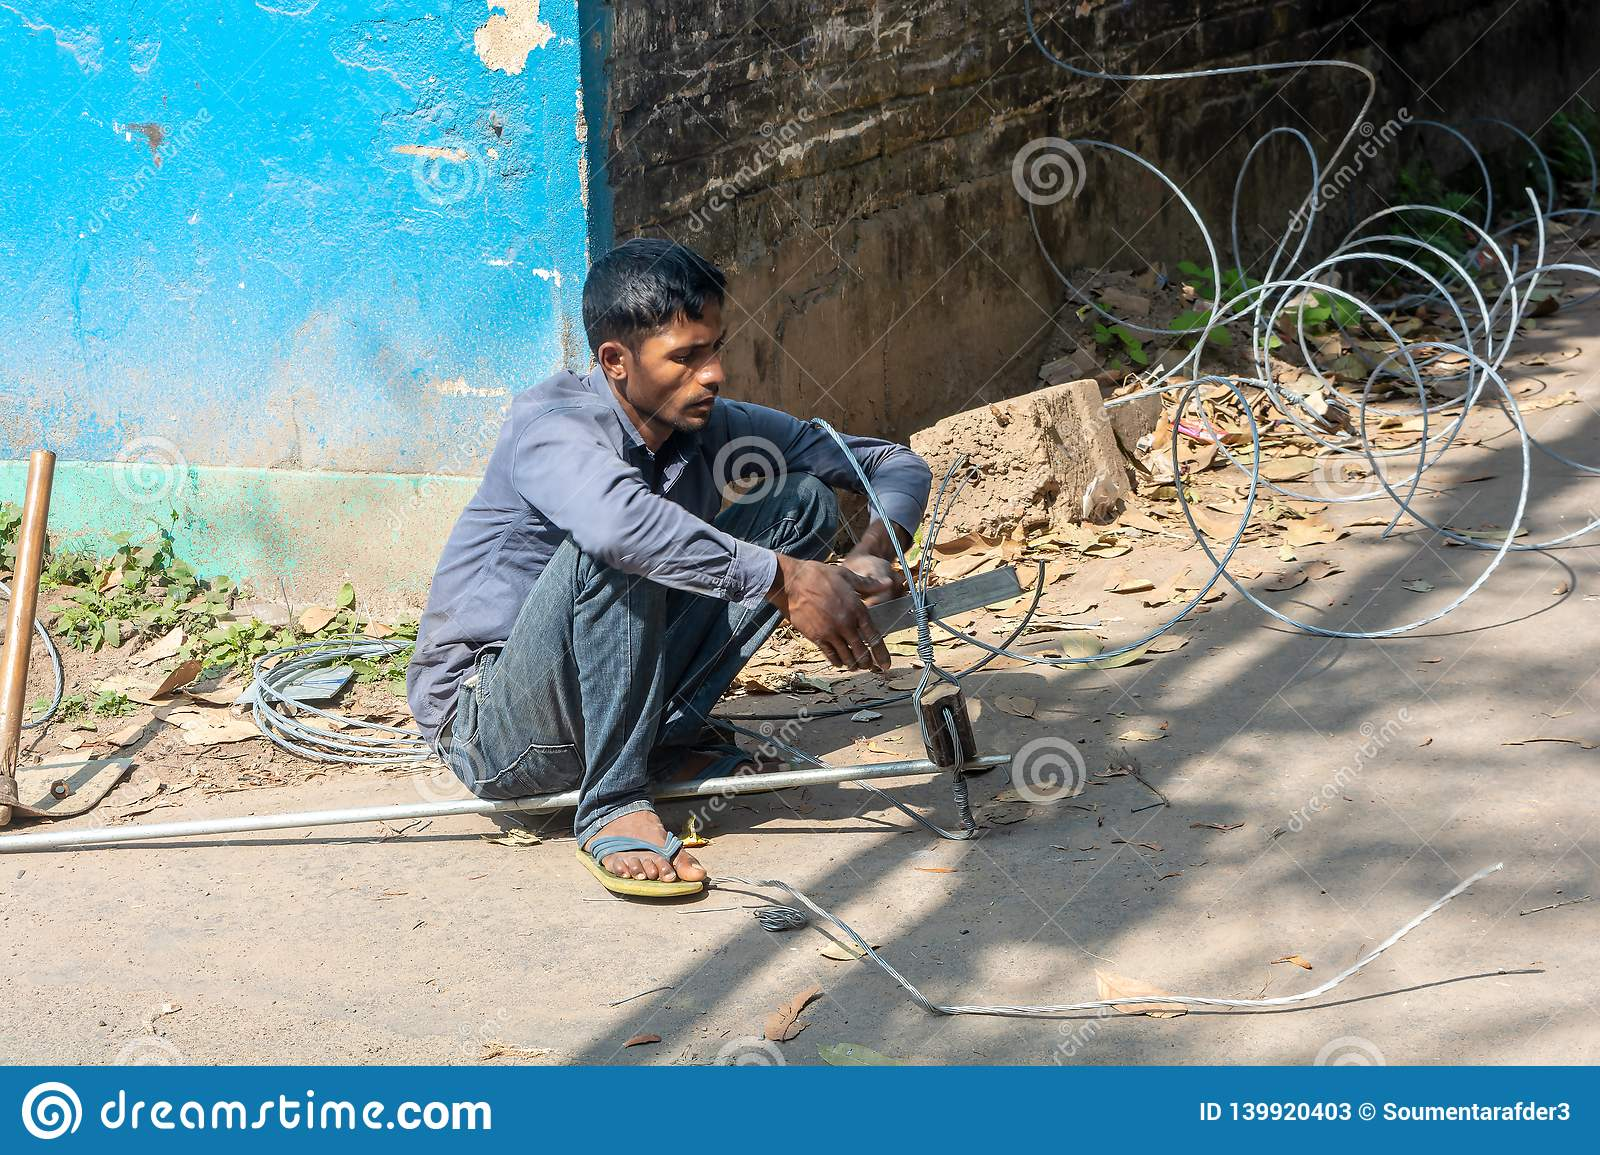 Man working with electrical wires without wearing safety gears